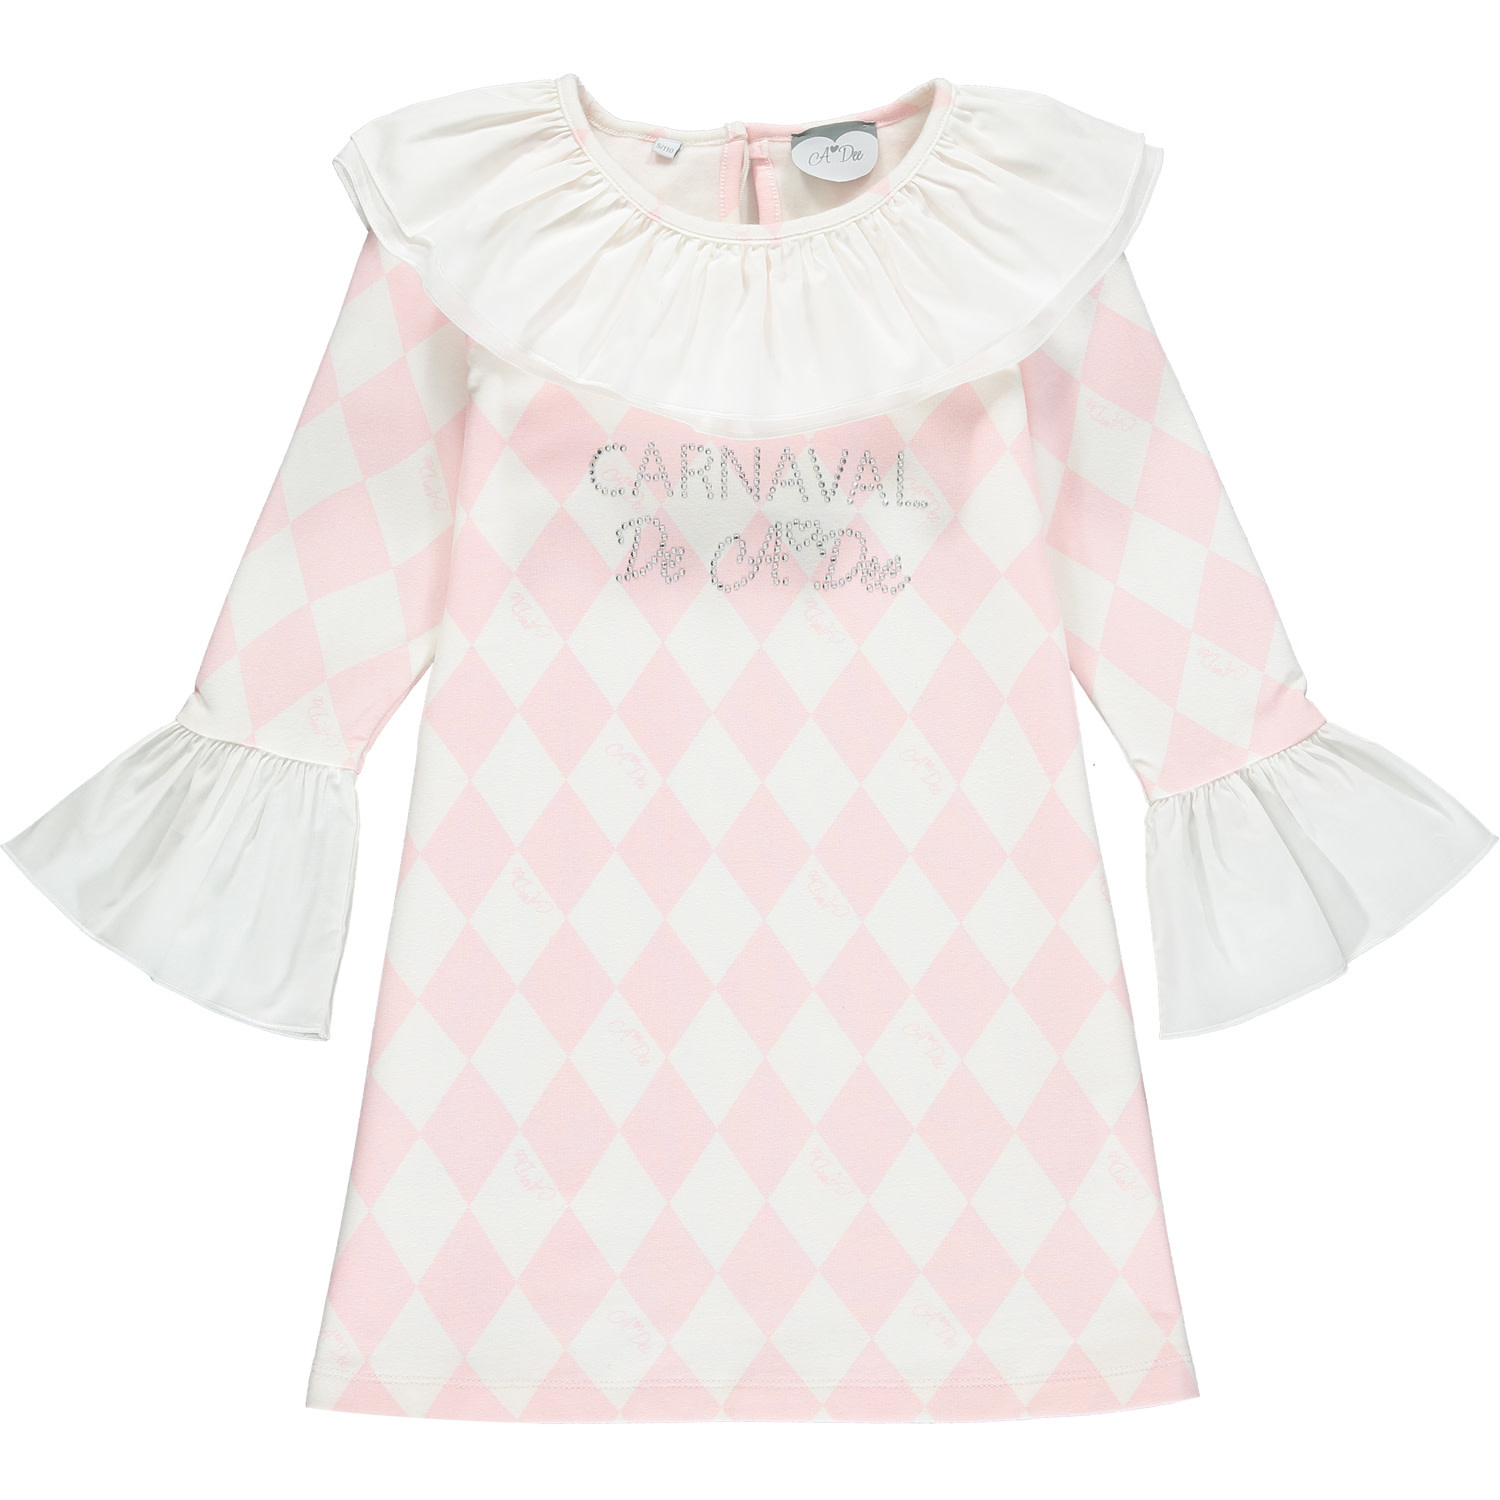 A Dee ADee Freeda Pink Harlequin Dress